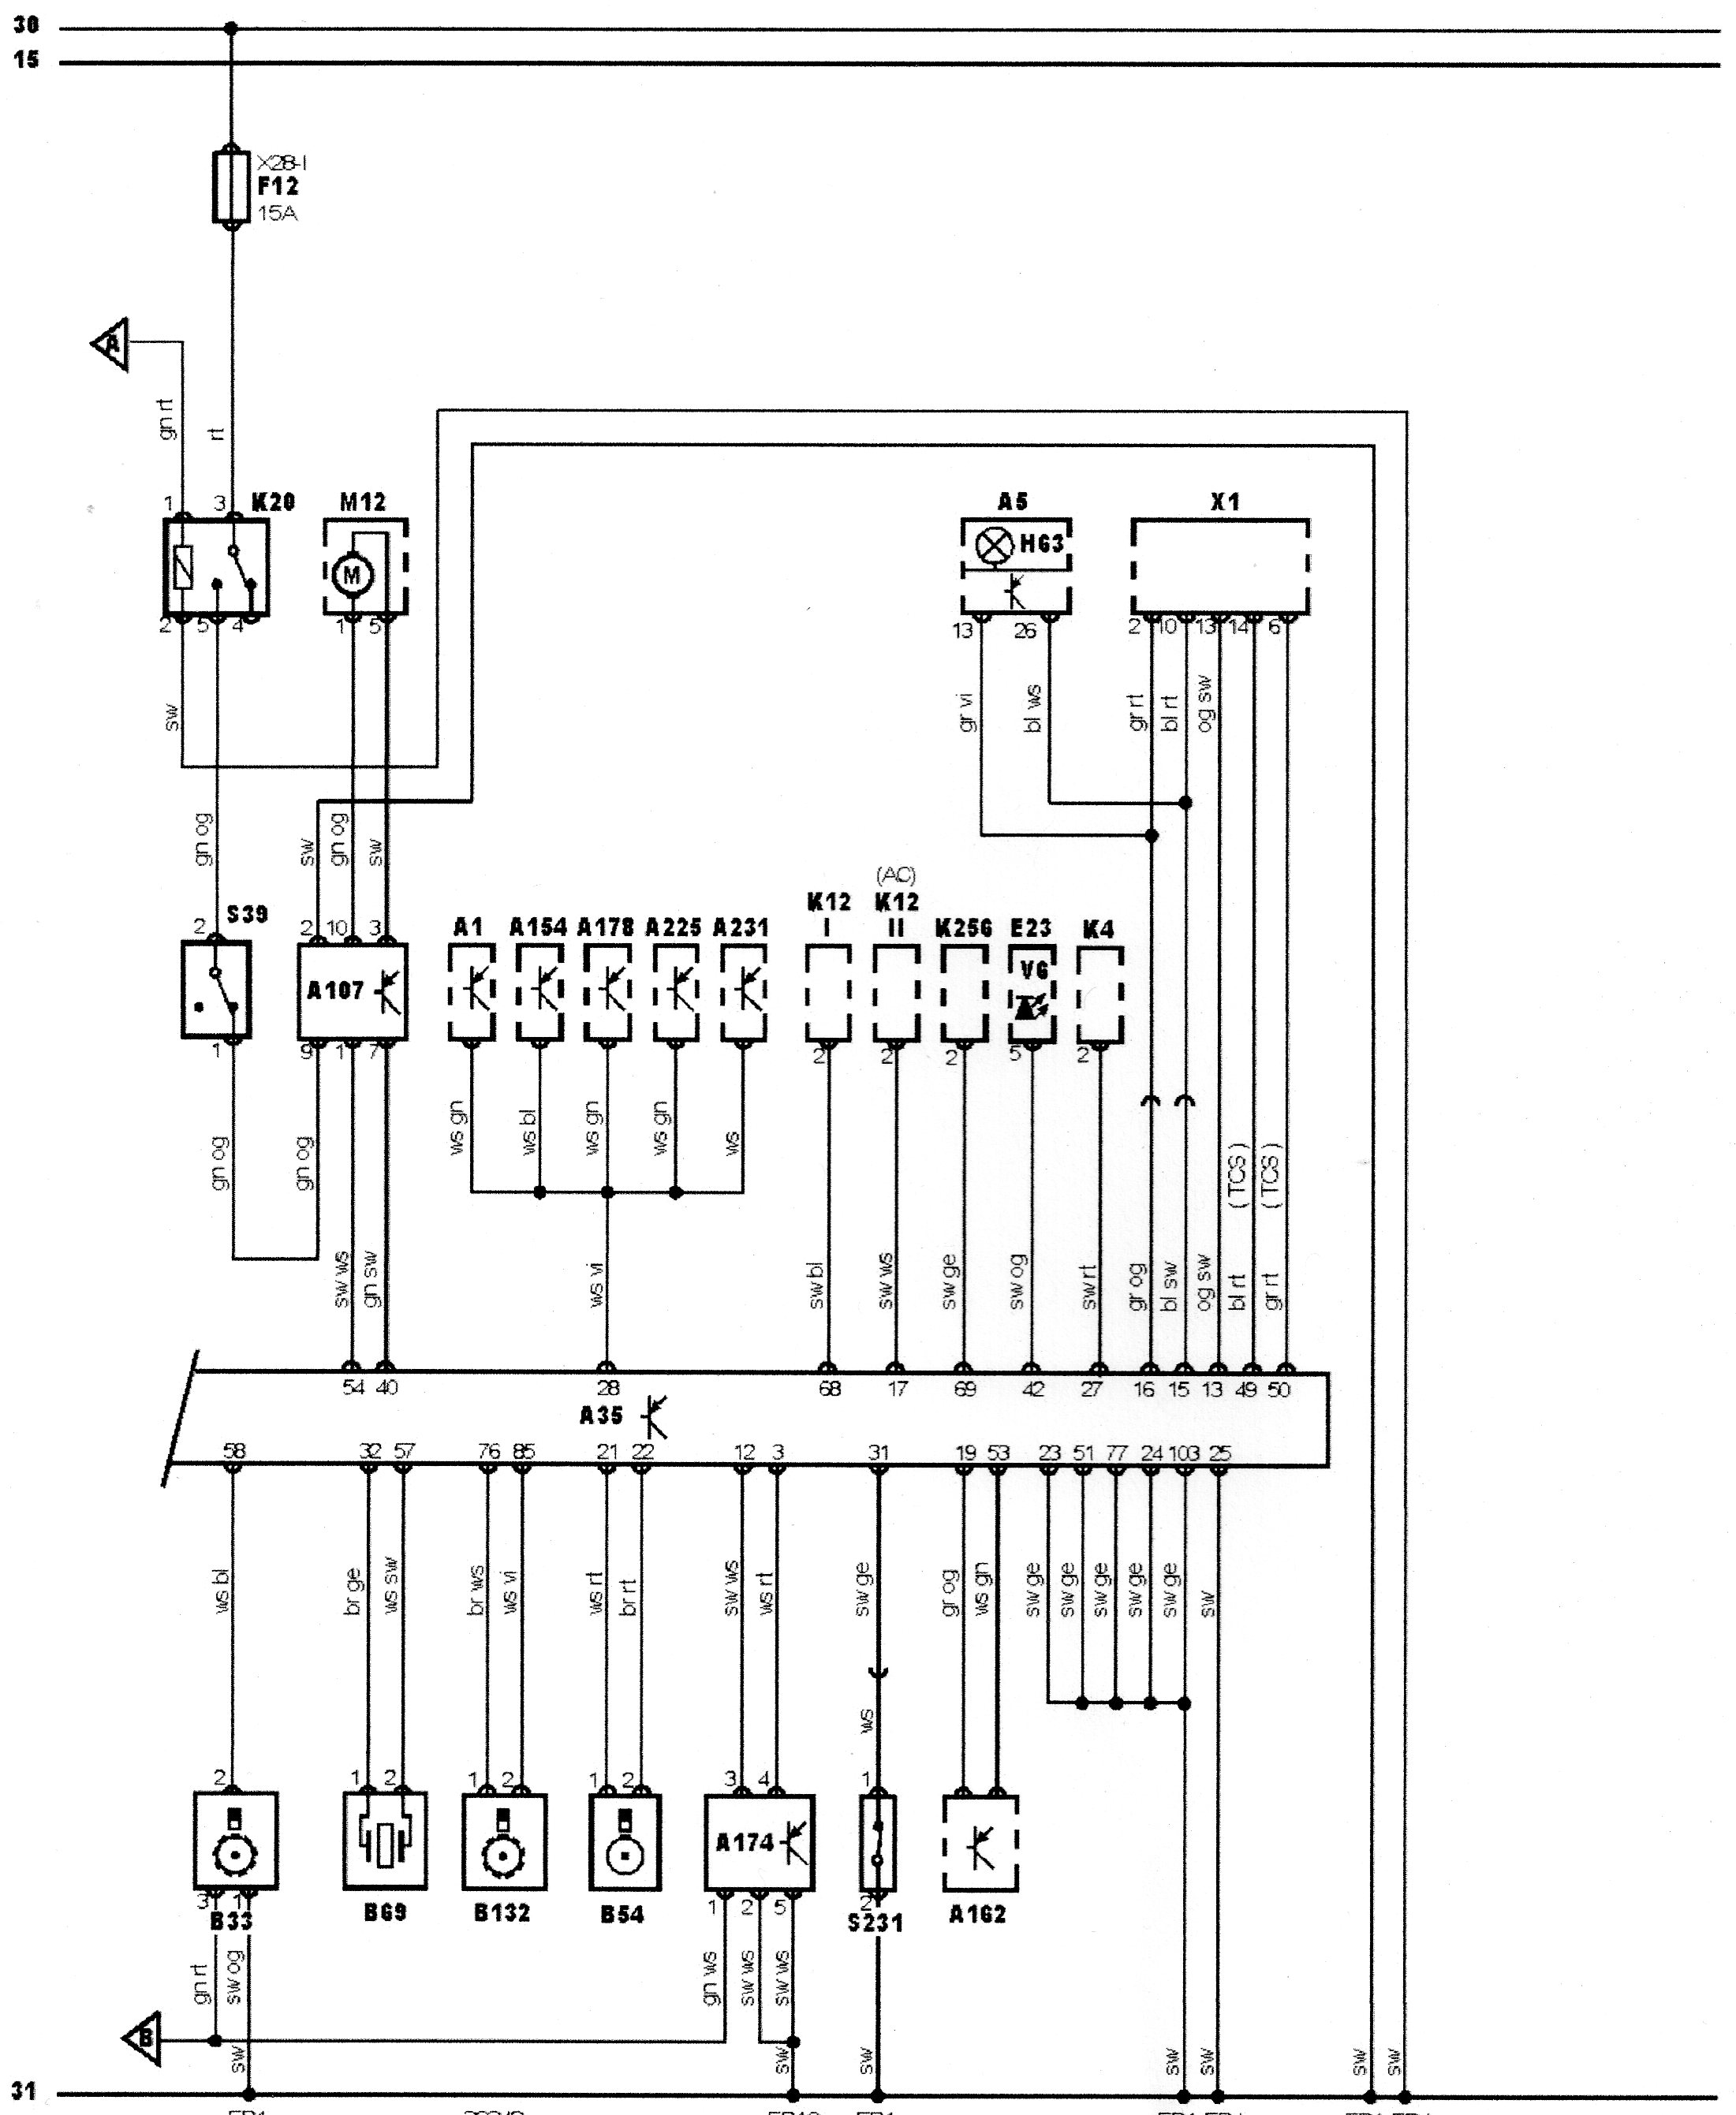 Anyone Kind Enough To Post A Ignition Wiring Diagram